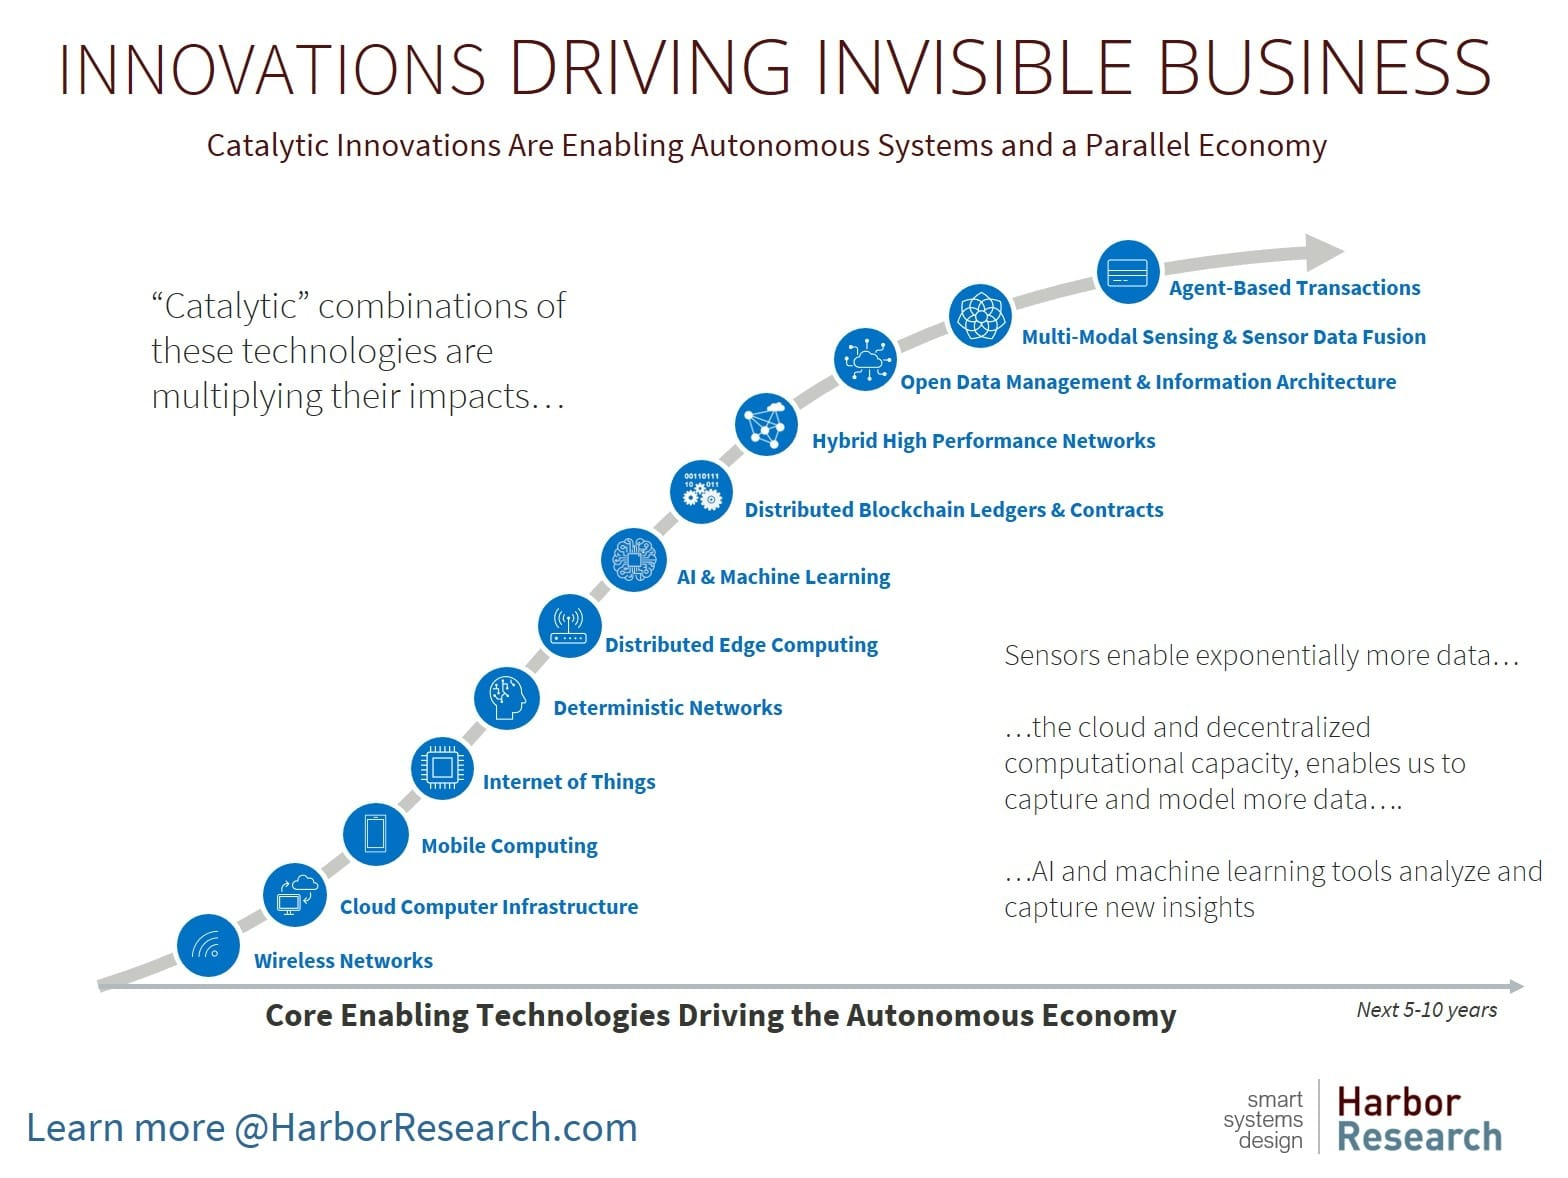 Innovations Driving Invisible Business